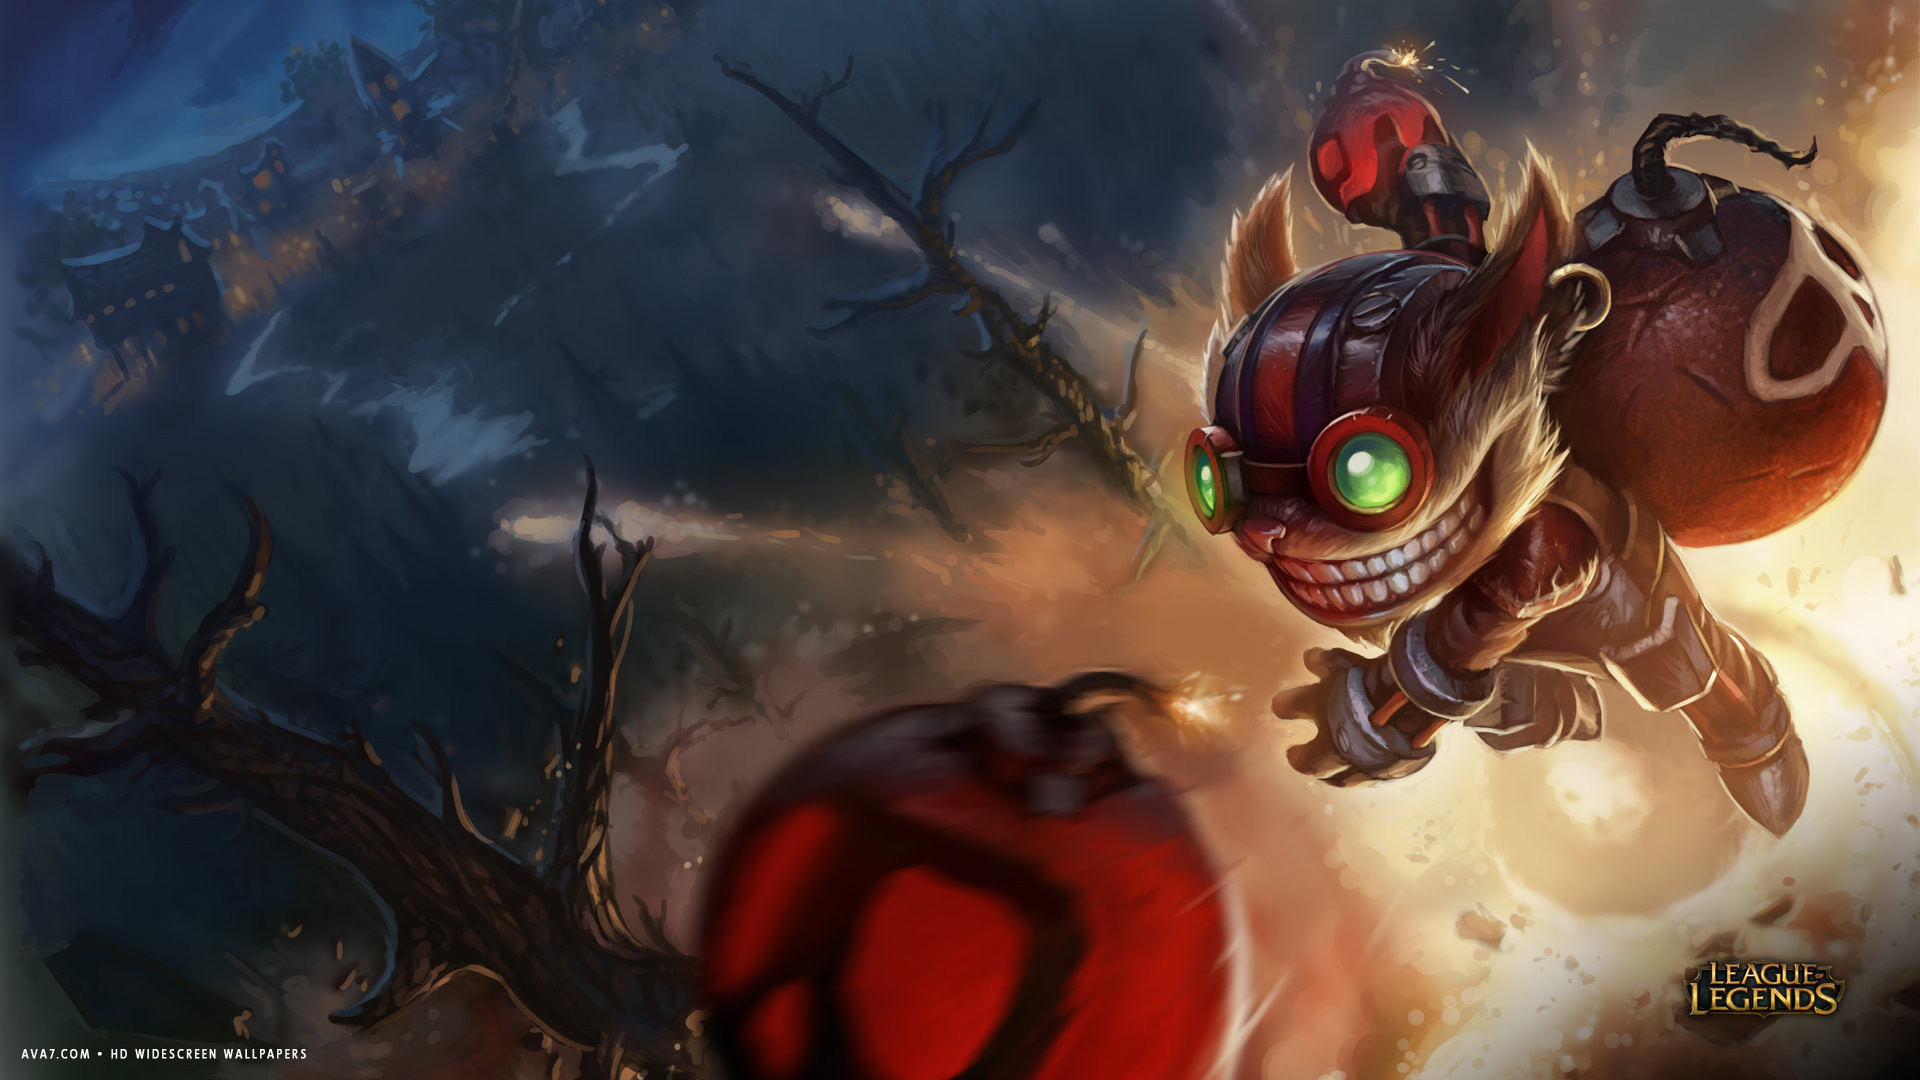 … monster wings; league of legends game lol ziggs bomb